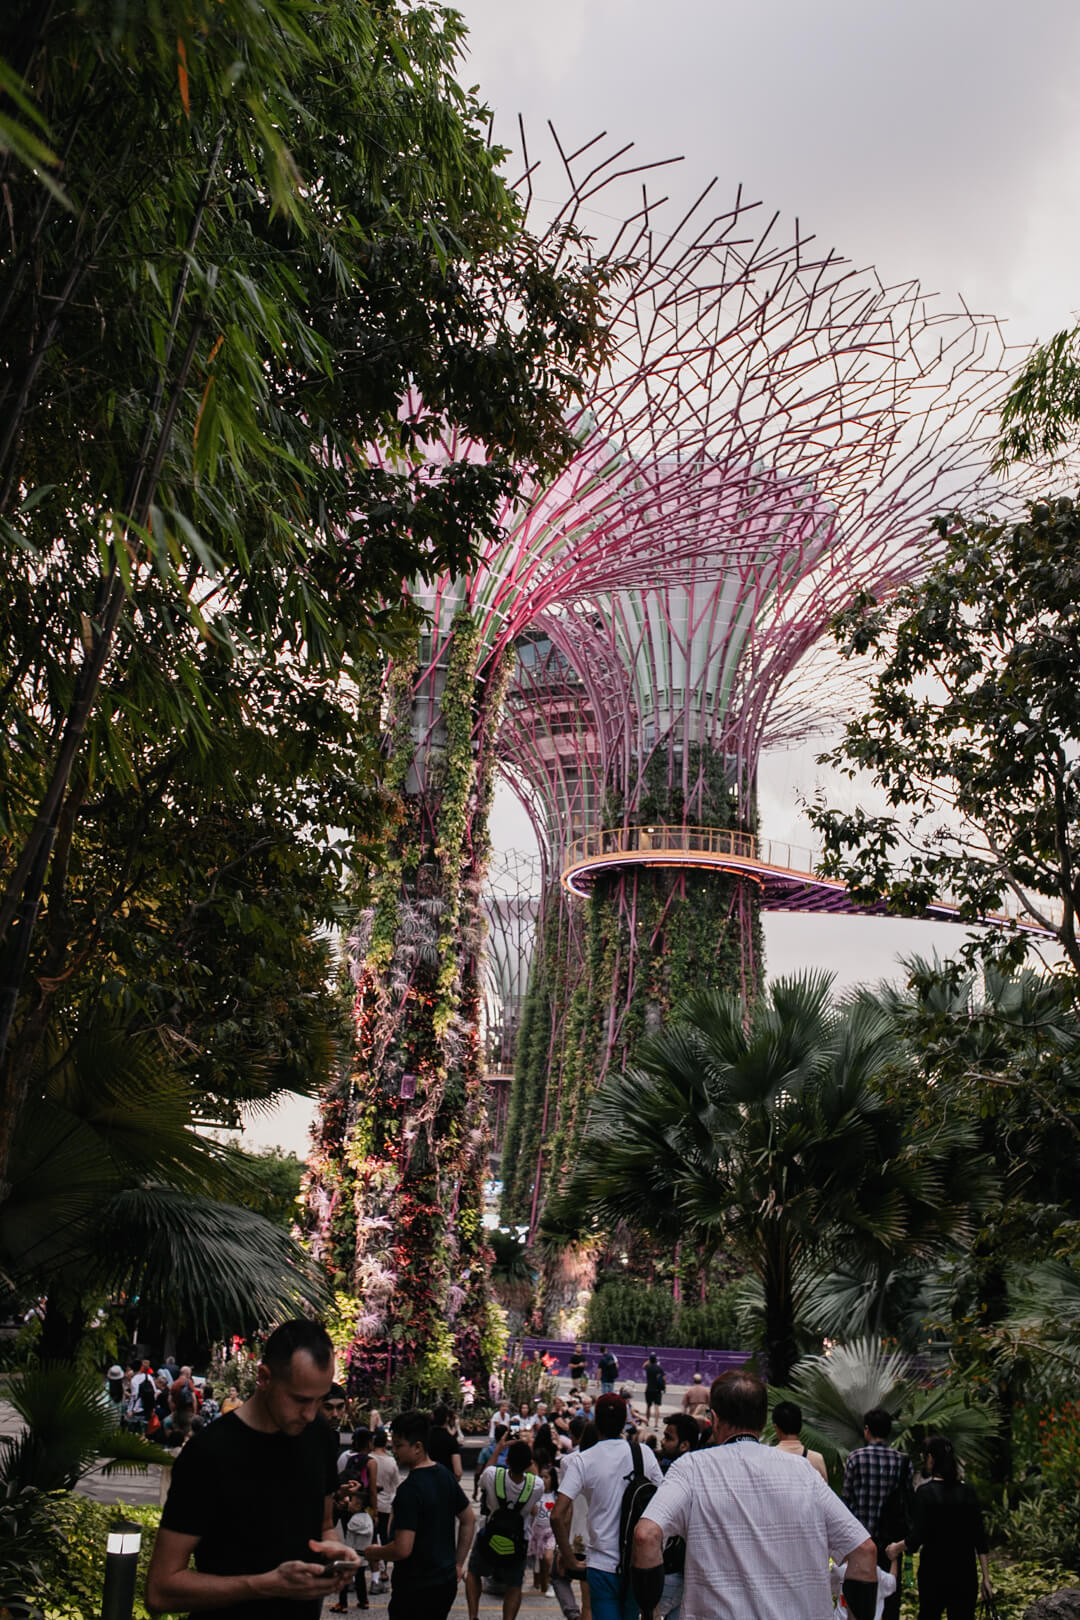 Supertrees im Garden by the Bay // Pieces of Mariposa - Lifestyle Blog aus Nürnberg